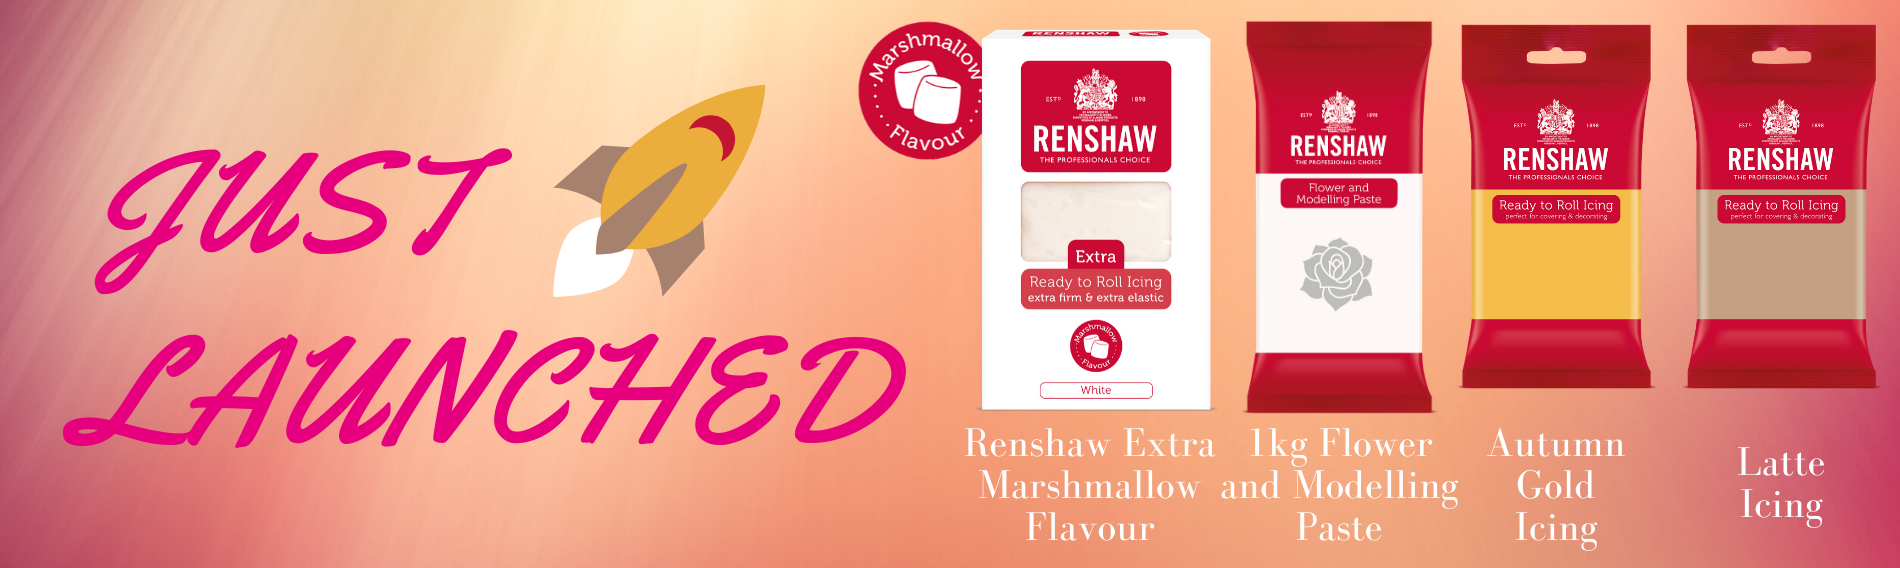 (OUT) New Renshaw products